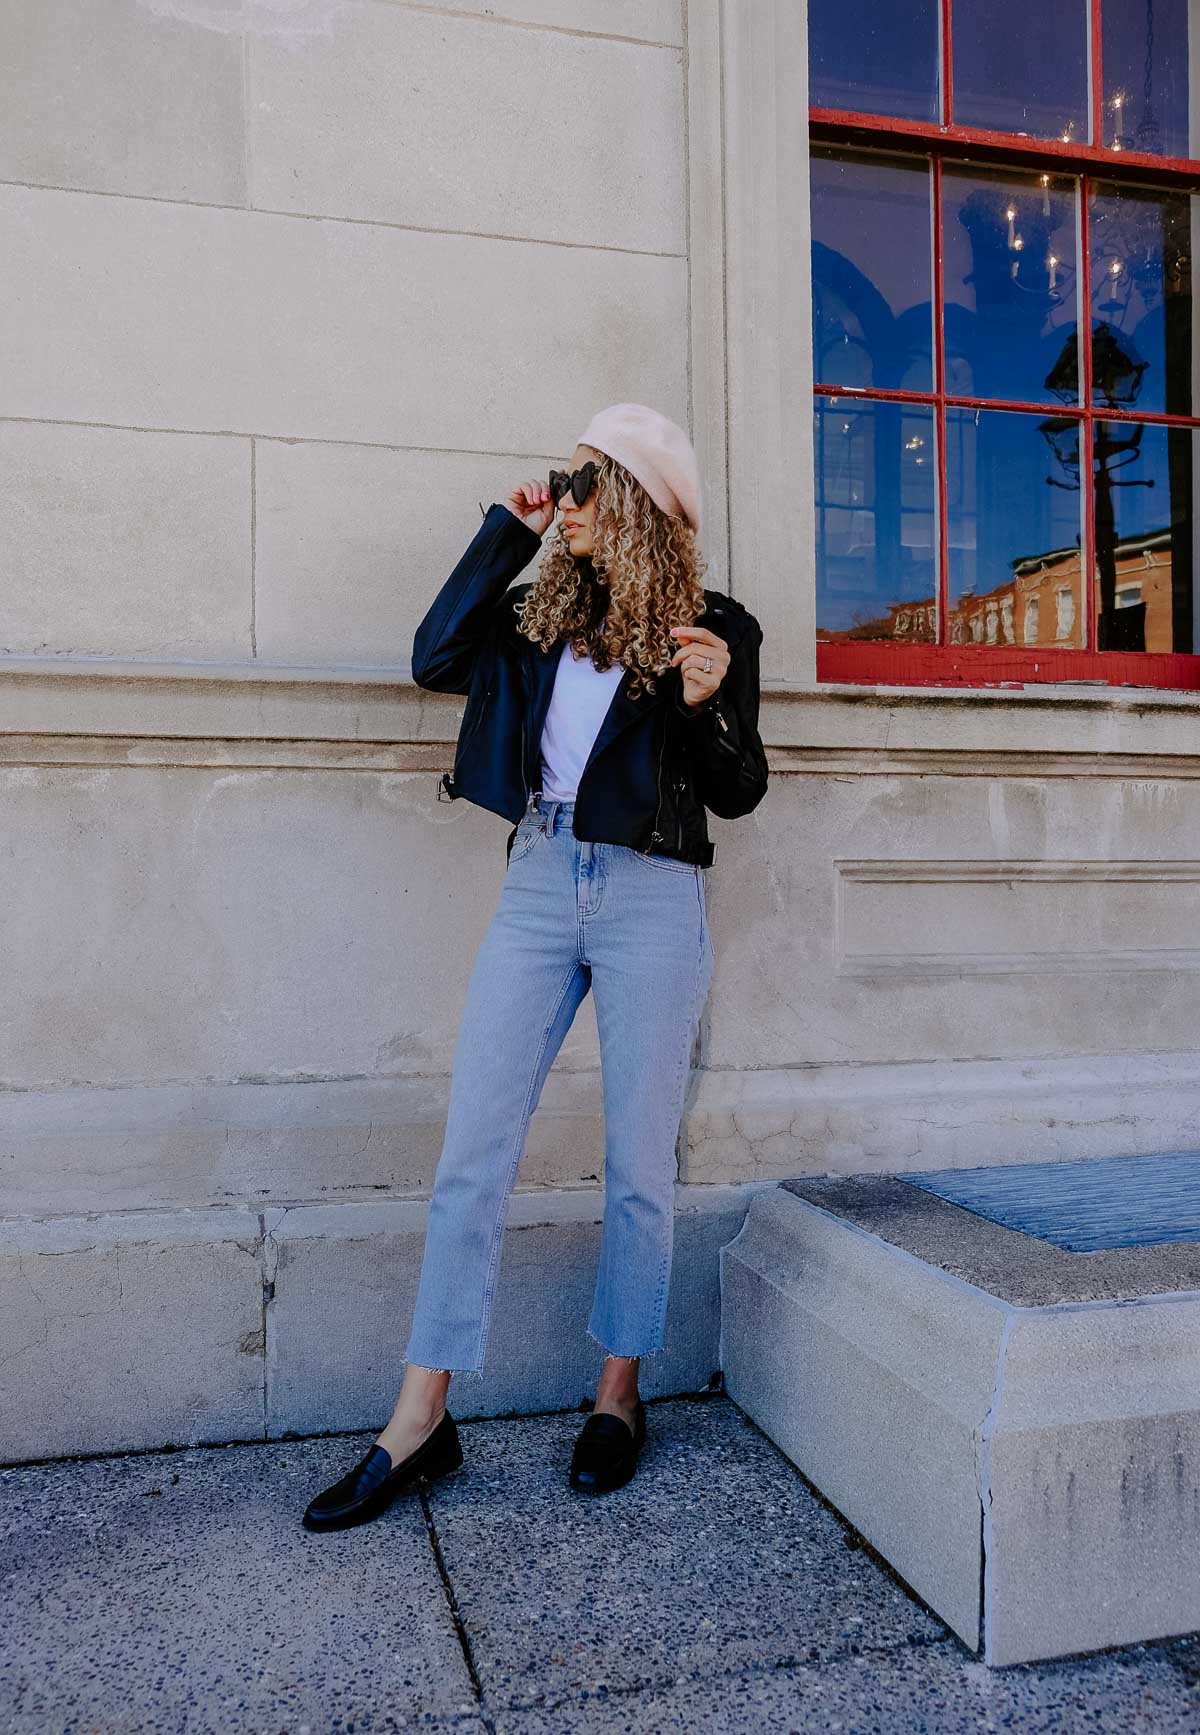 straight leg jeans and suspender outfit inspired by french fashion